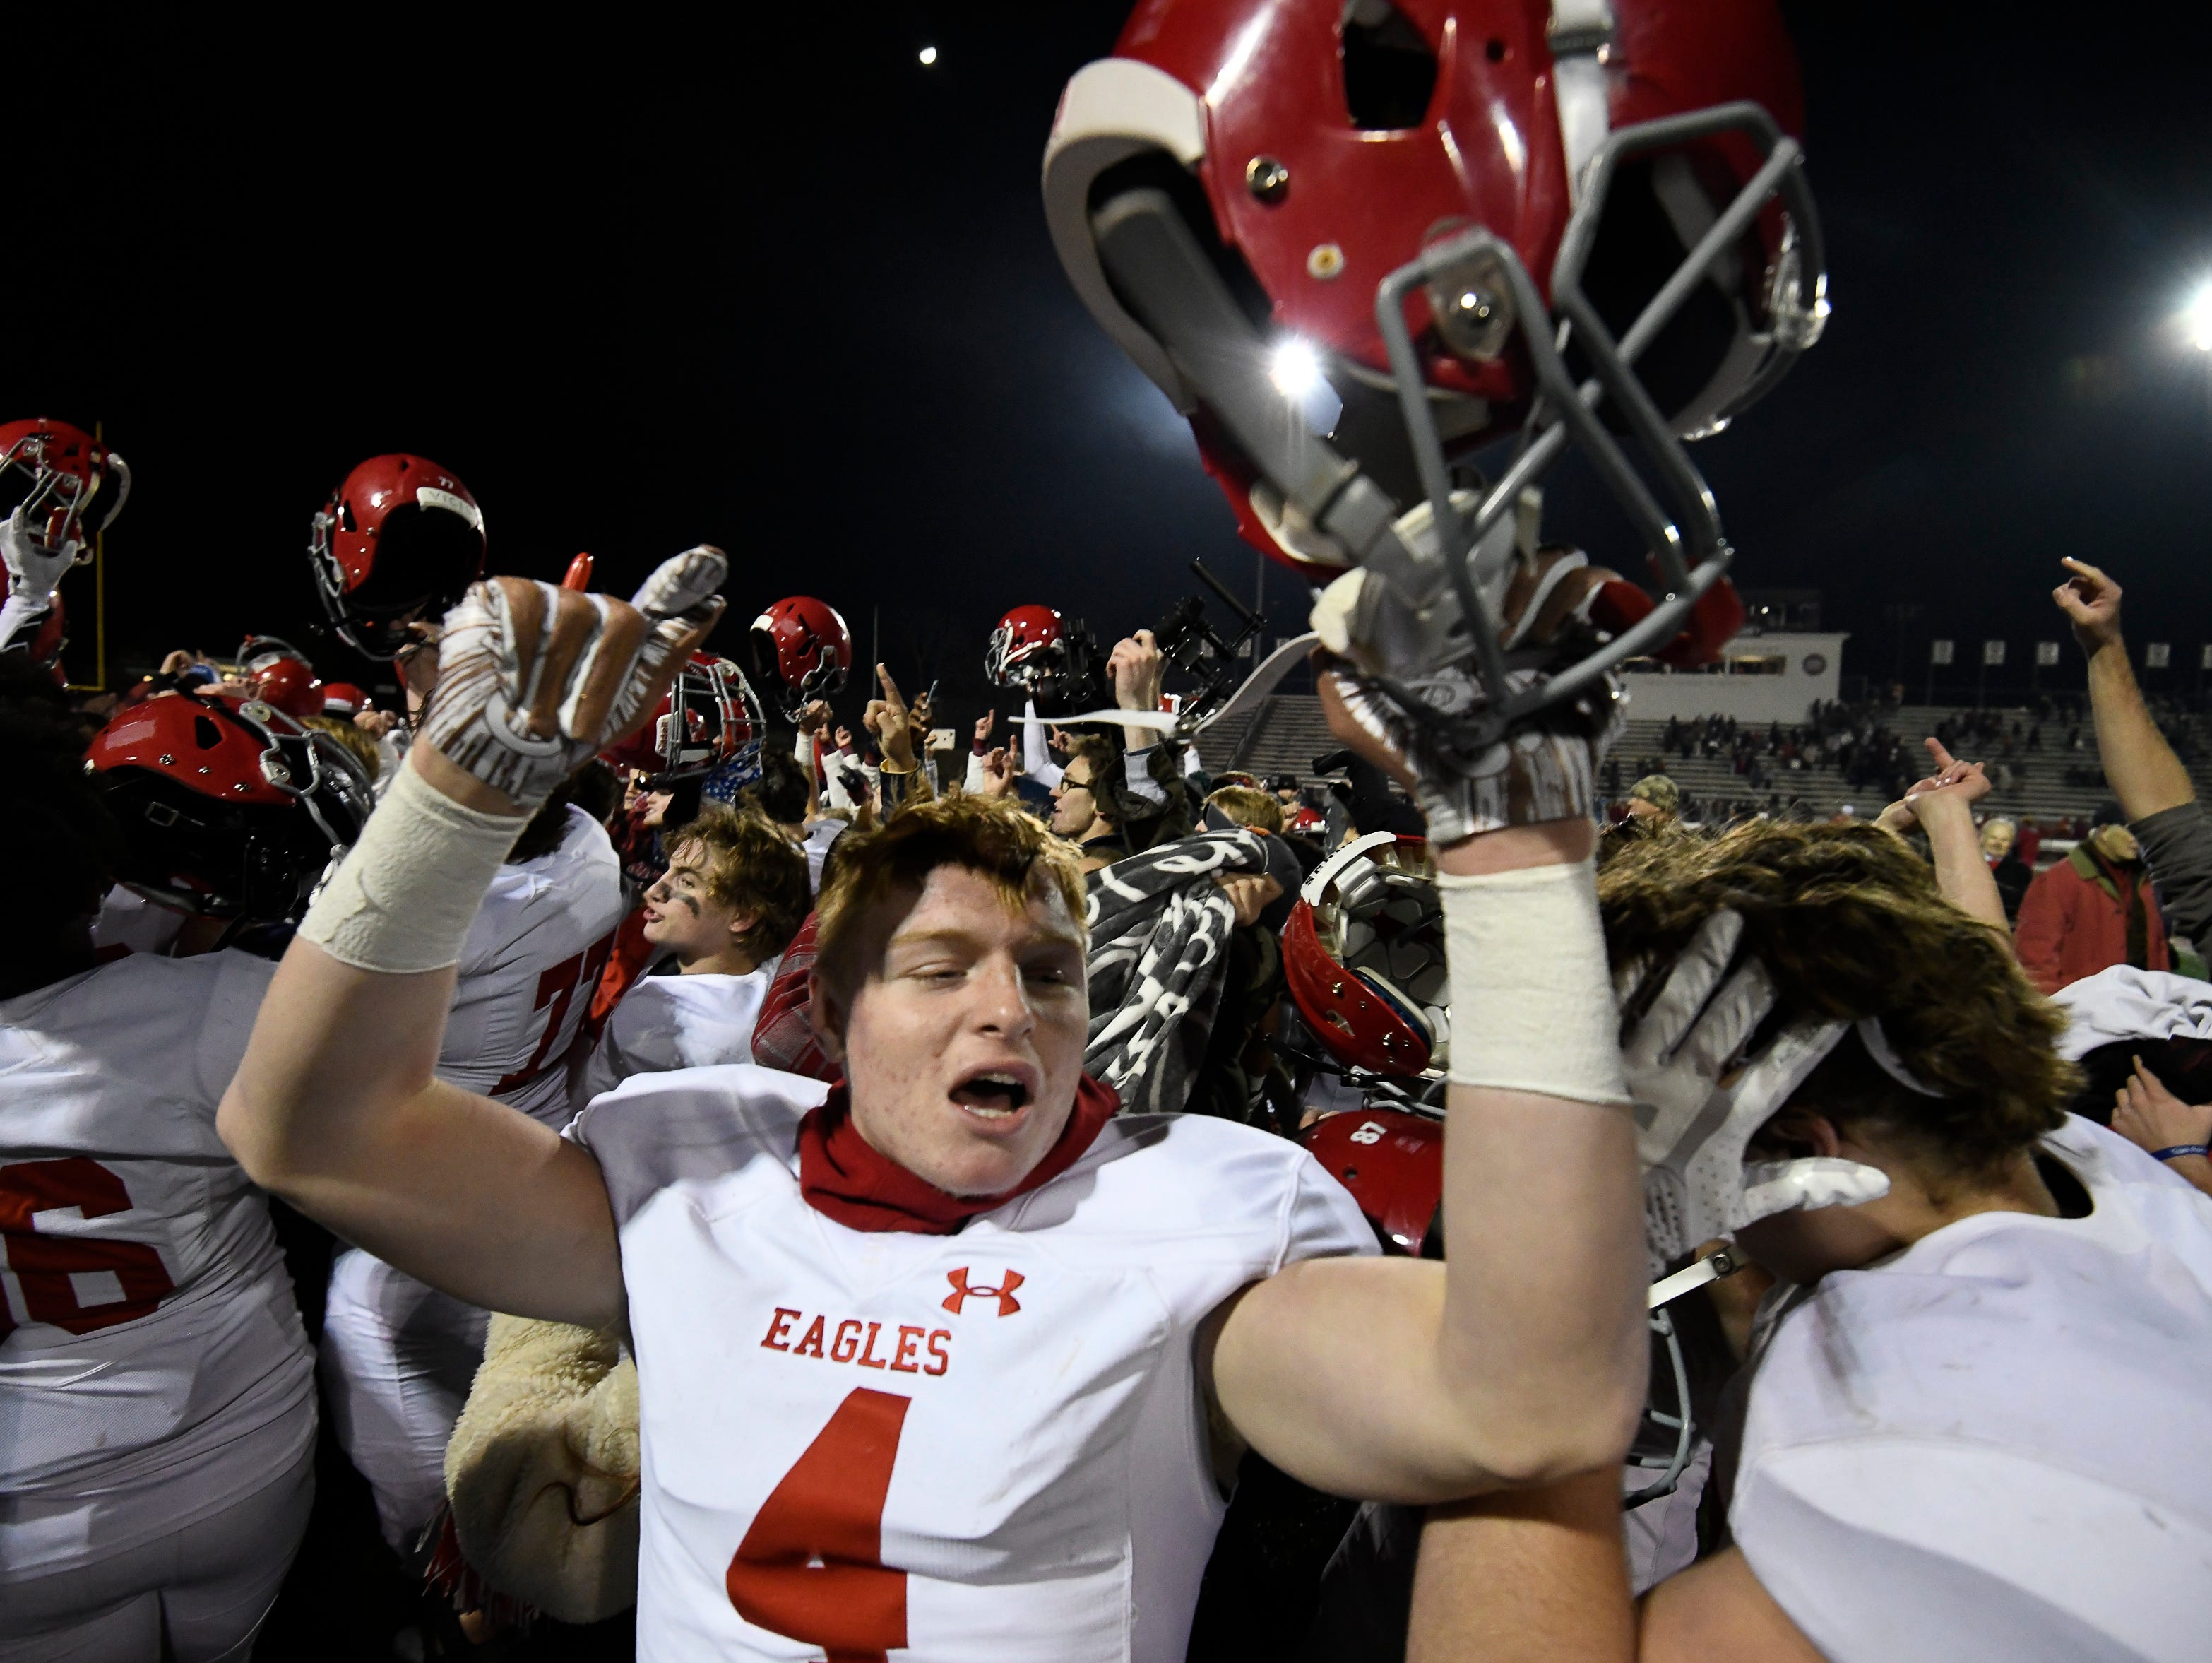 Brentwood Academy celebrates their 28 to 6 win over MBA